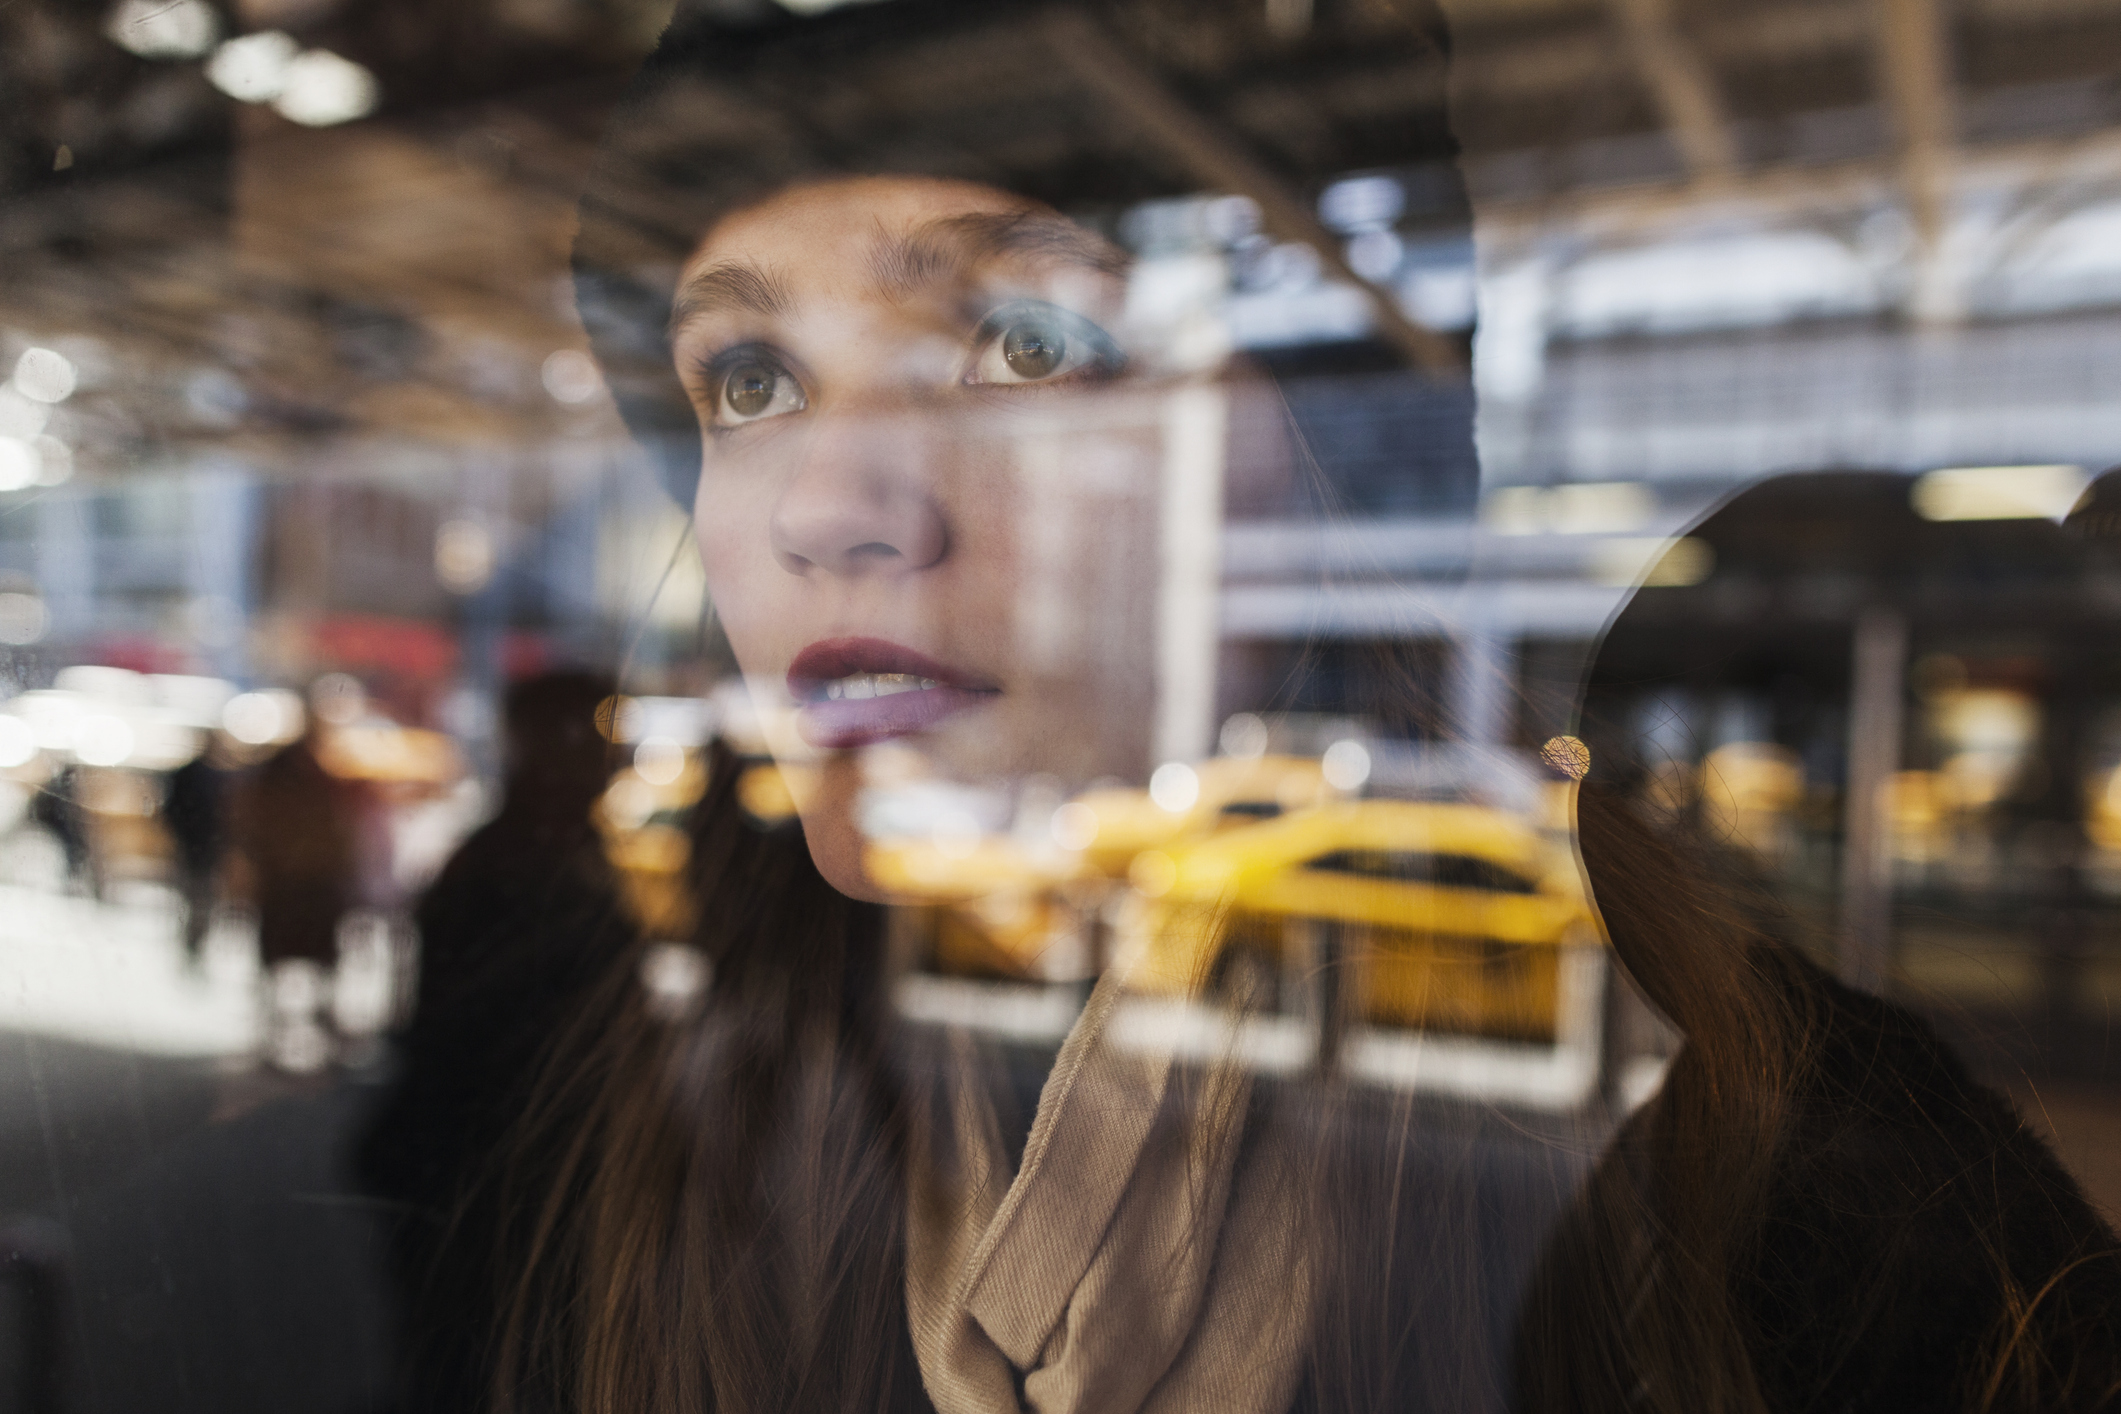 Girl looks through a glass window at taxis and people in New York City